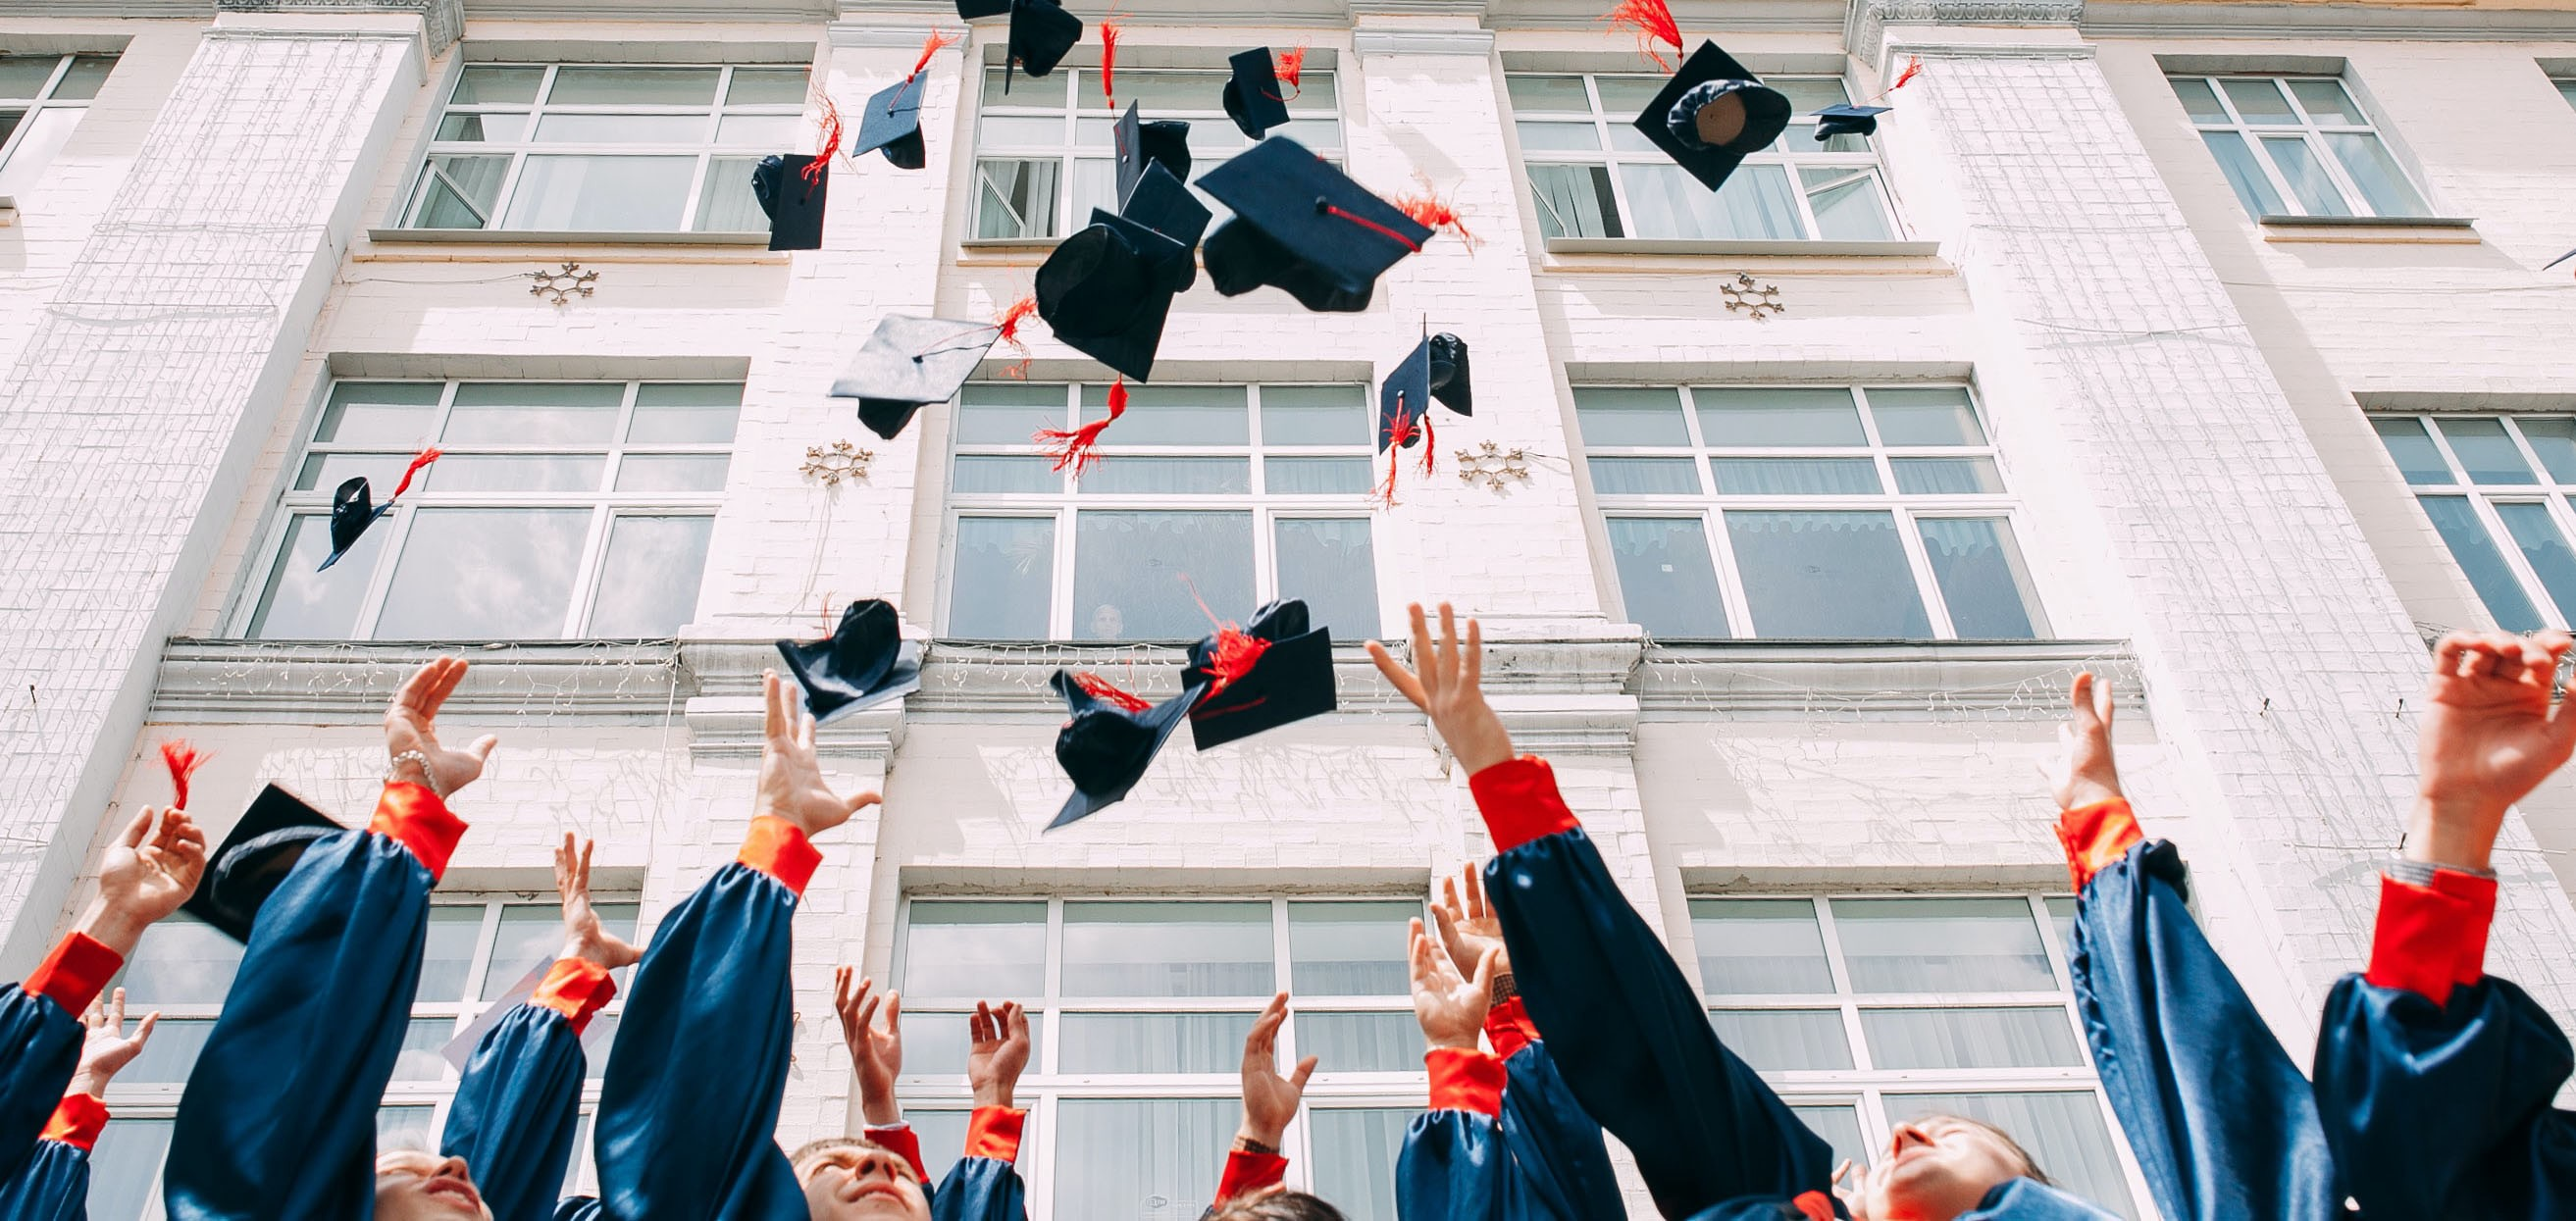 Group of fresh graduates students throwing their academic hats in the air in front of a building.